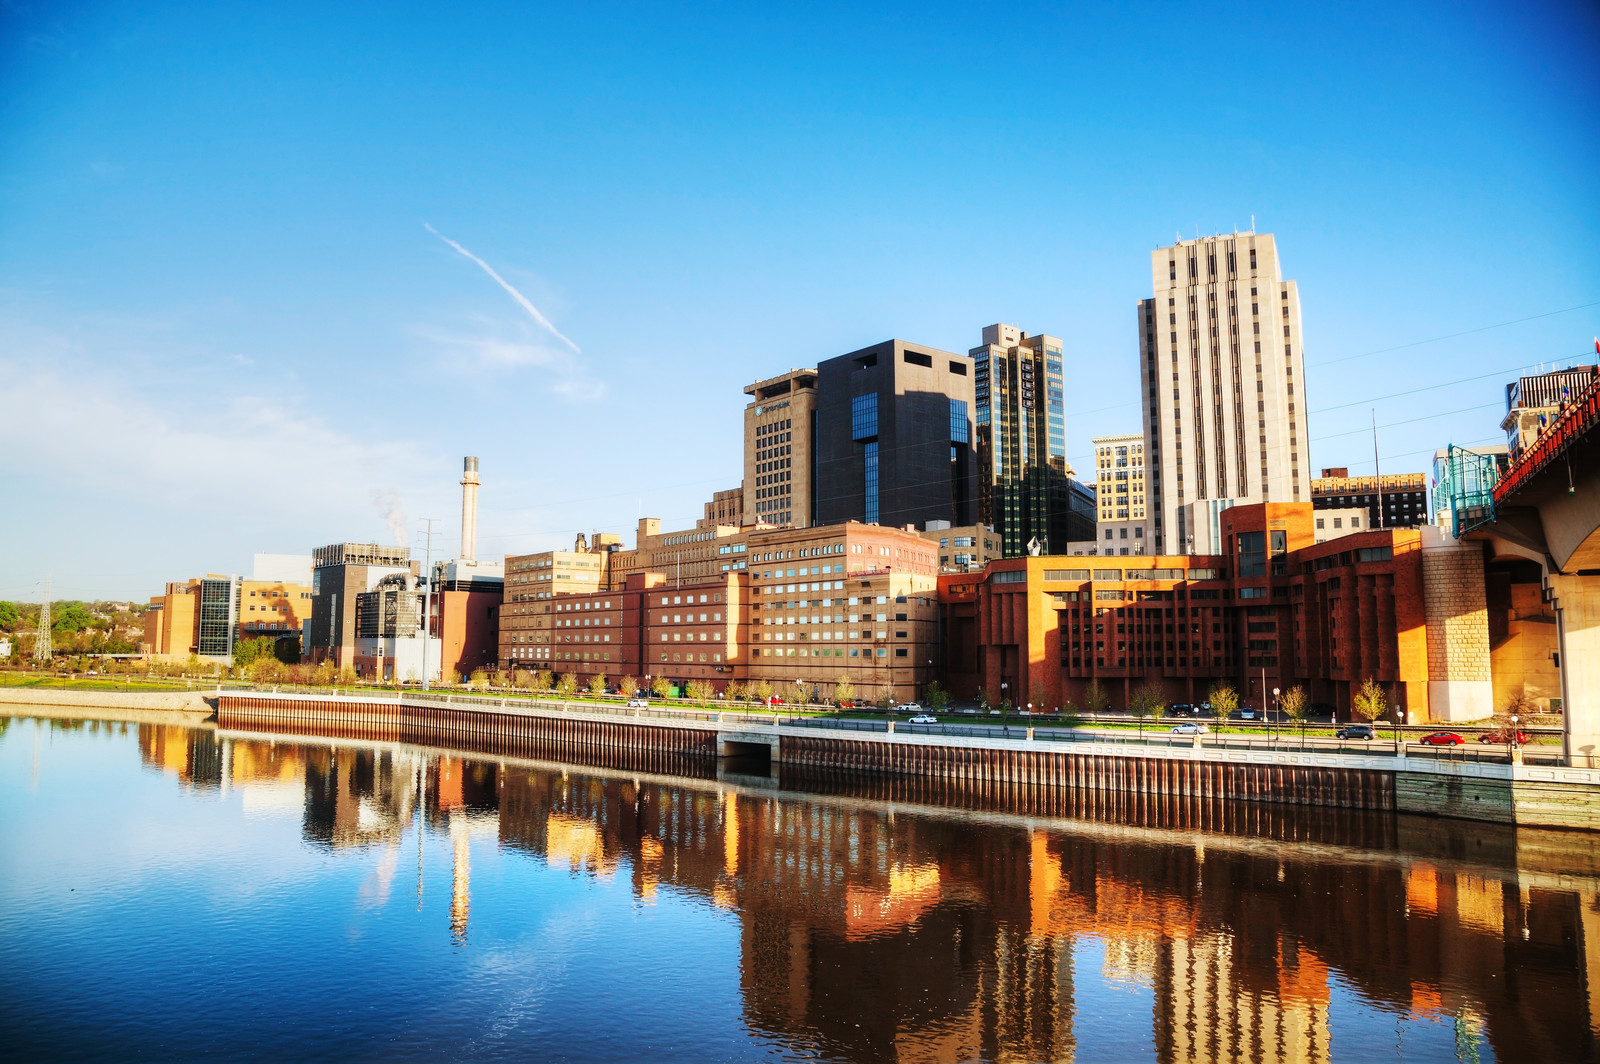 Downtown st paul along the mississippi river with blue skies and the cities reflection along the water